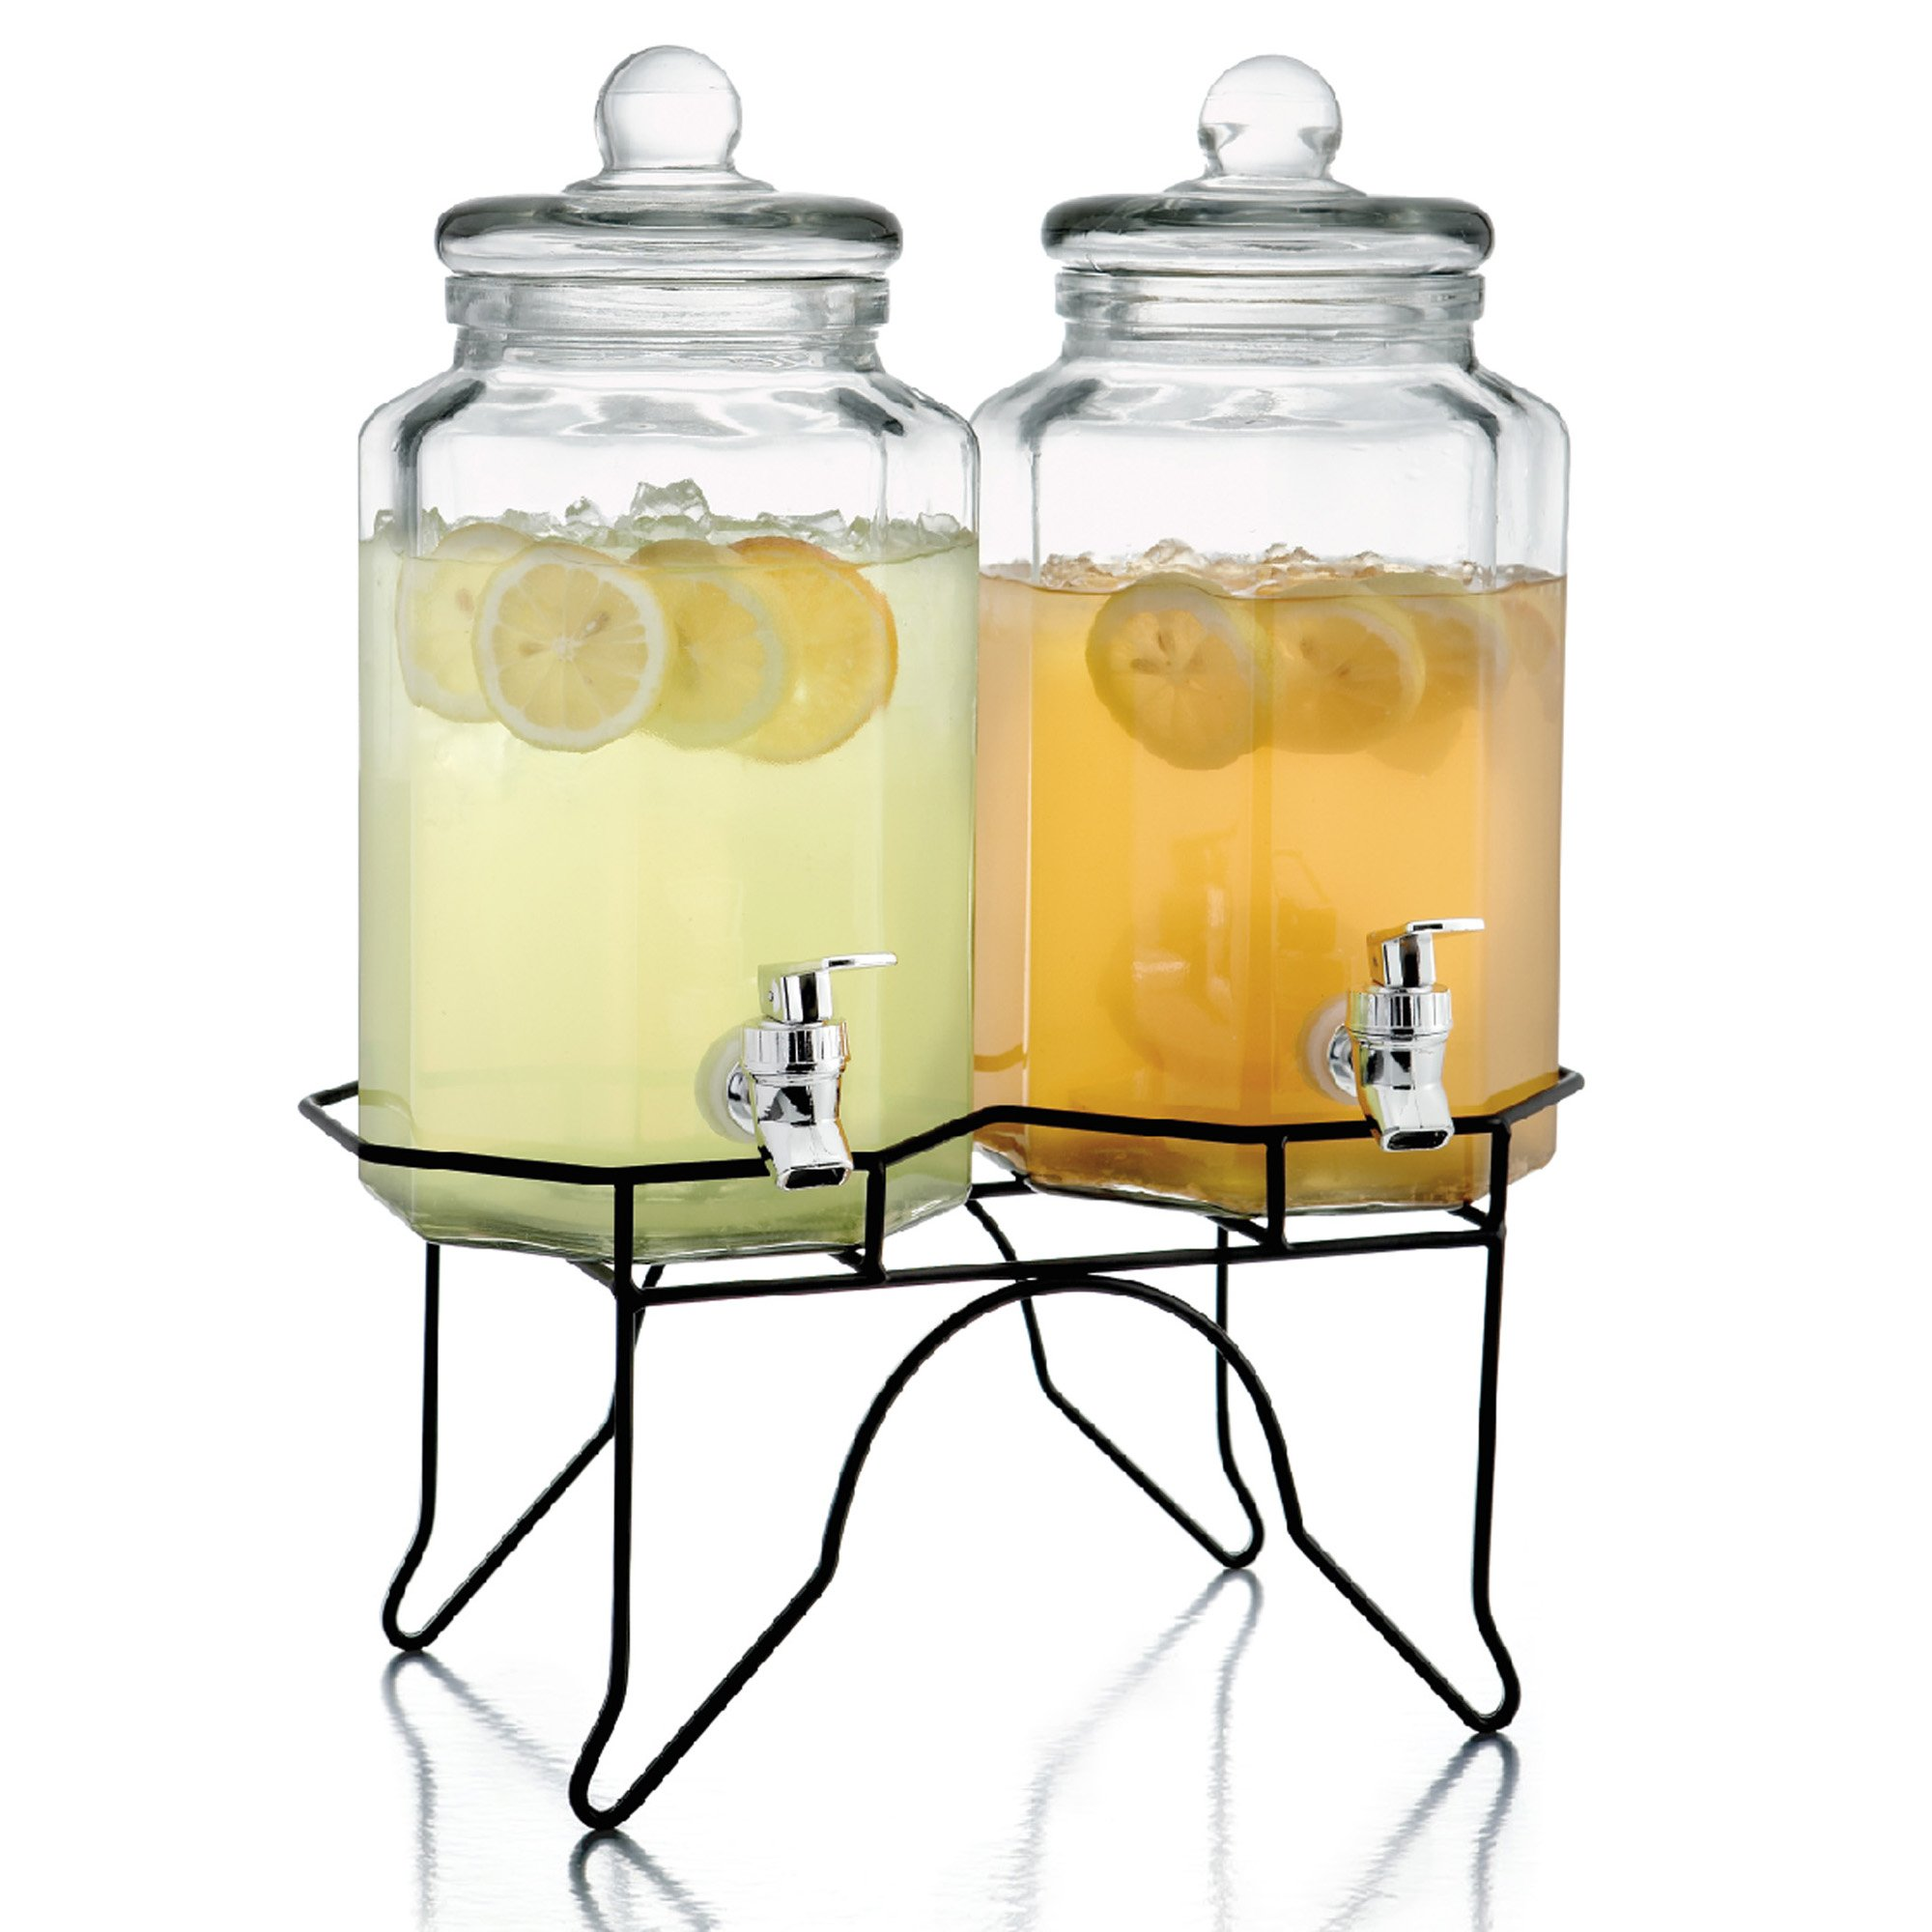 Style Setter Laredo Octagon 210927-GB Beverage Cold Drink Dispenser w/ 1-Gallon Each Capacity Glass Jug, Leak-Proof Acrylic Spigot in Gift Box for Parties, 14x7x16'', Clear